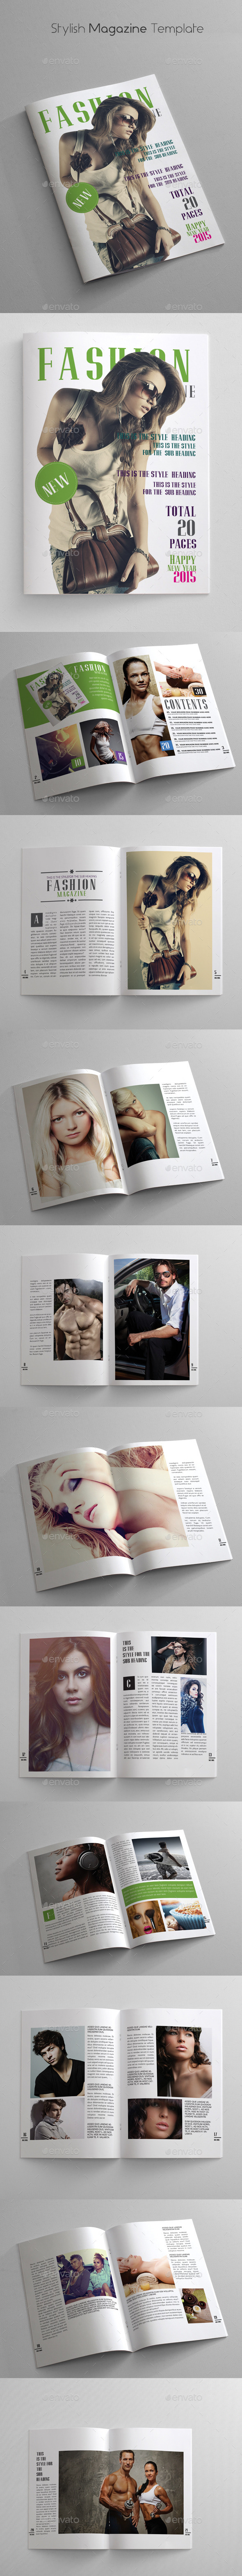 GraphicRiver Stylish Magazine Template 10201426